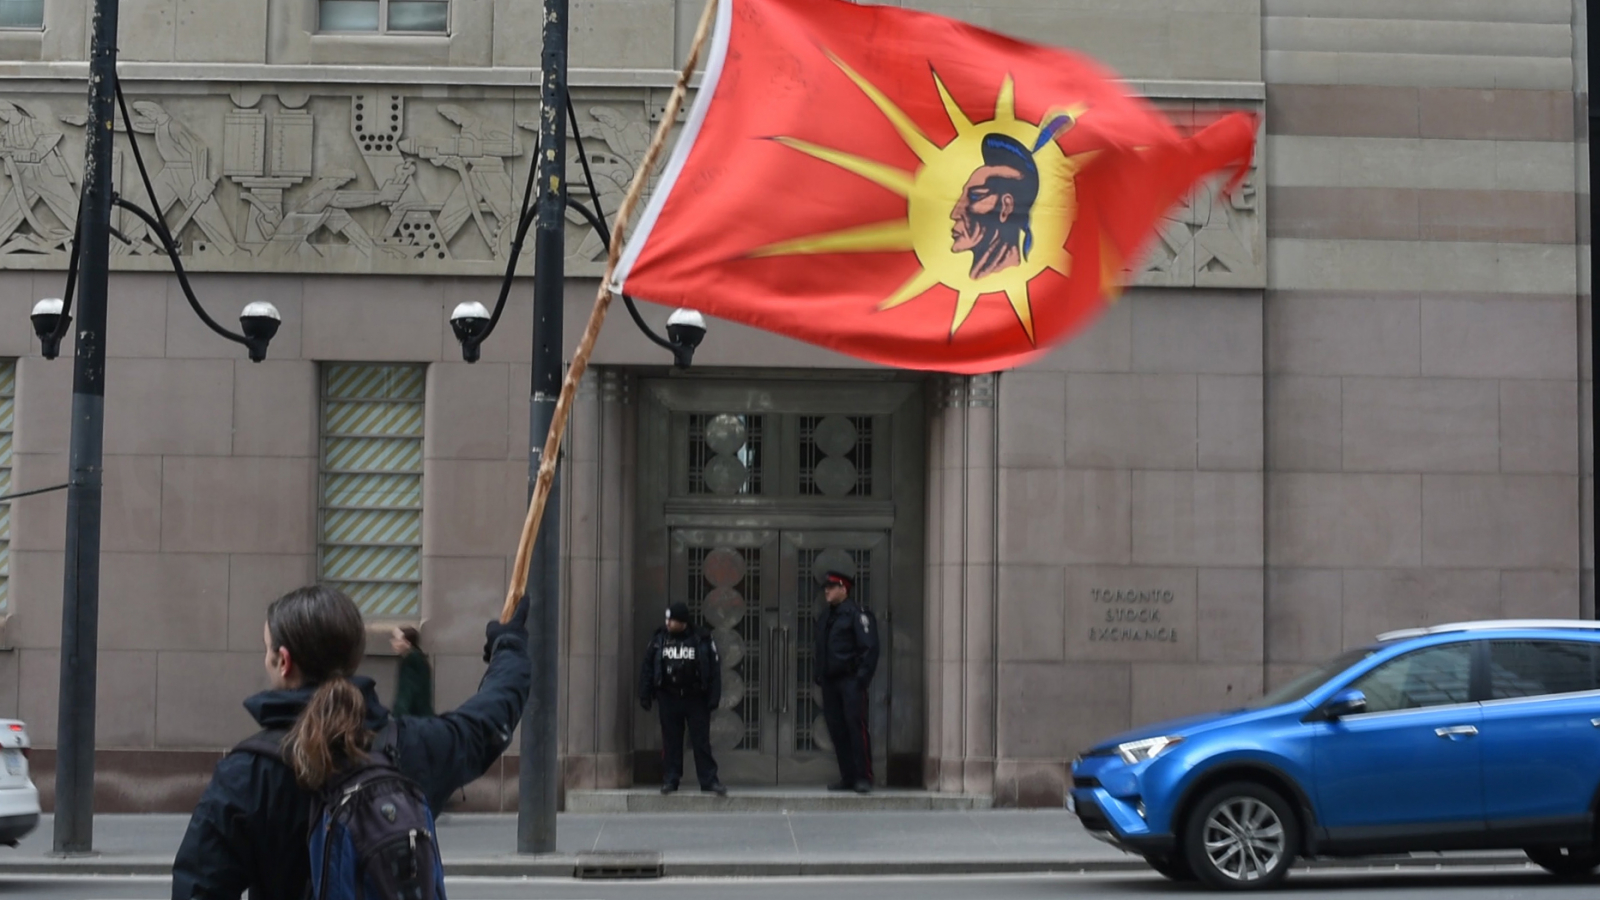 A man waves the Mohawk Warrior Society flag at a protest outside TD Bank's headquarters in downtown Toronto on March 30, 2017, to demand that the company end its partnership with Kinder Morgan. Photo by National Observer.